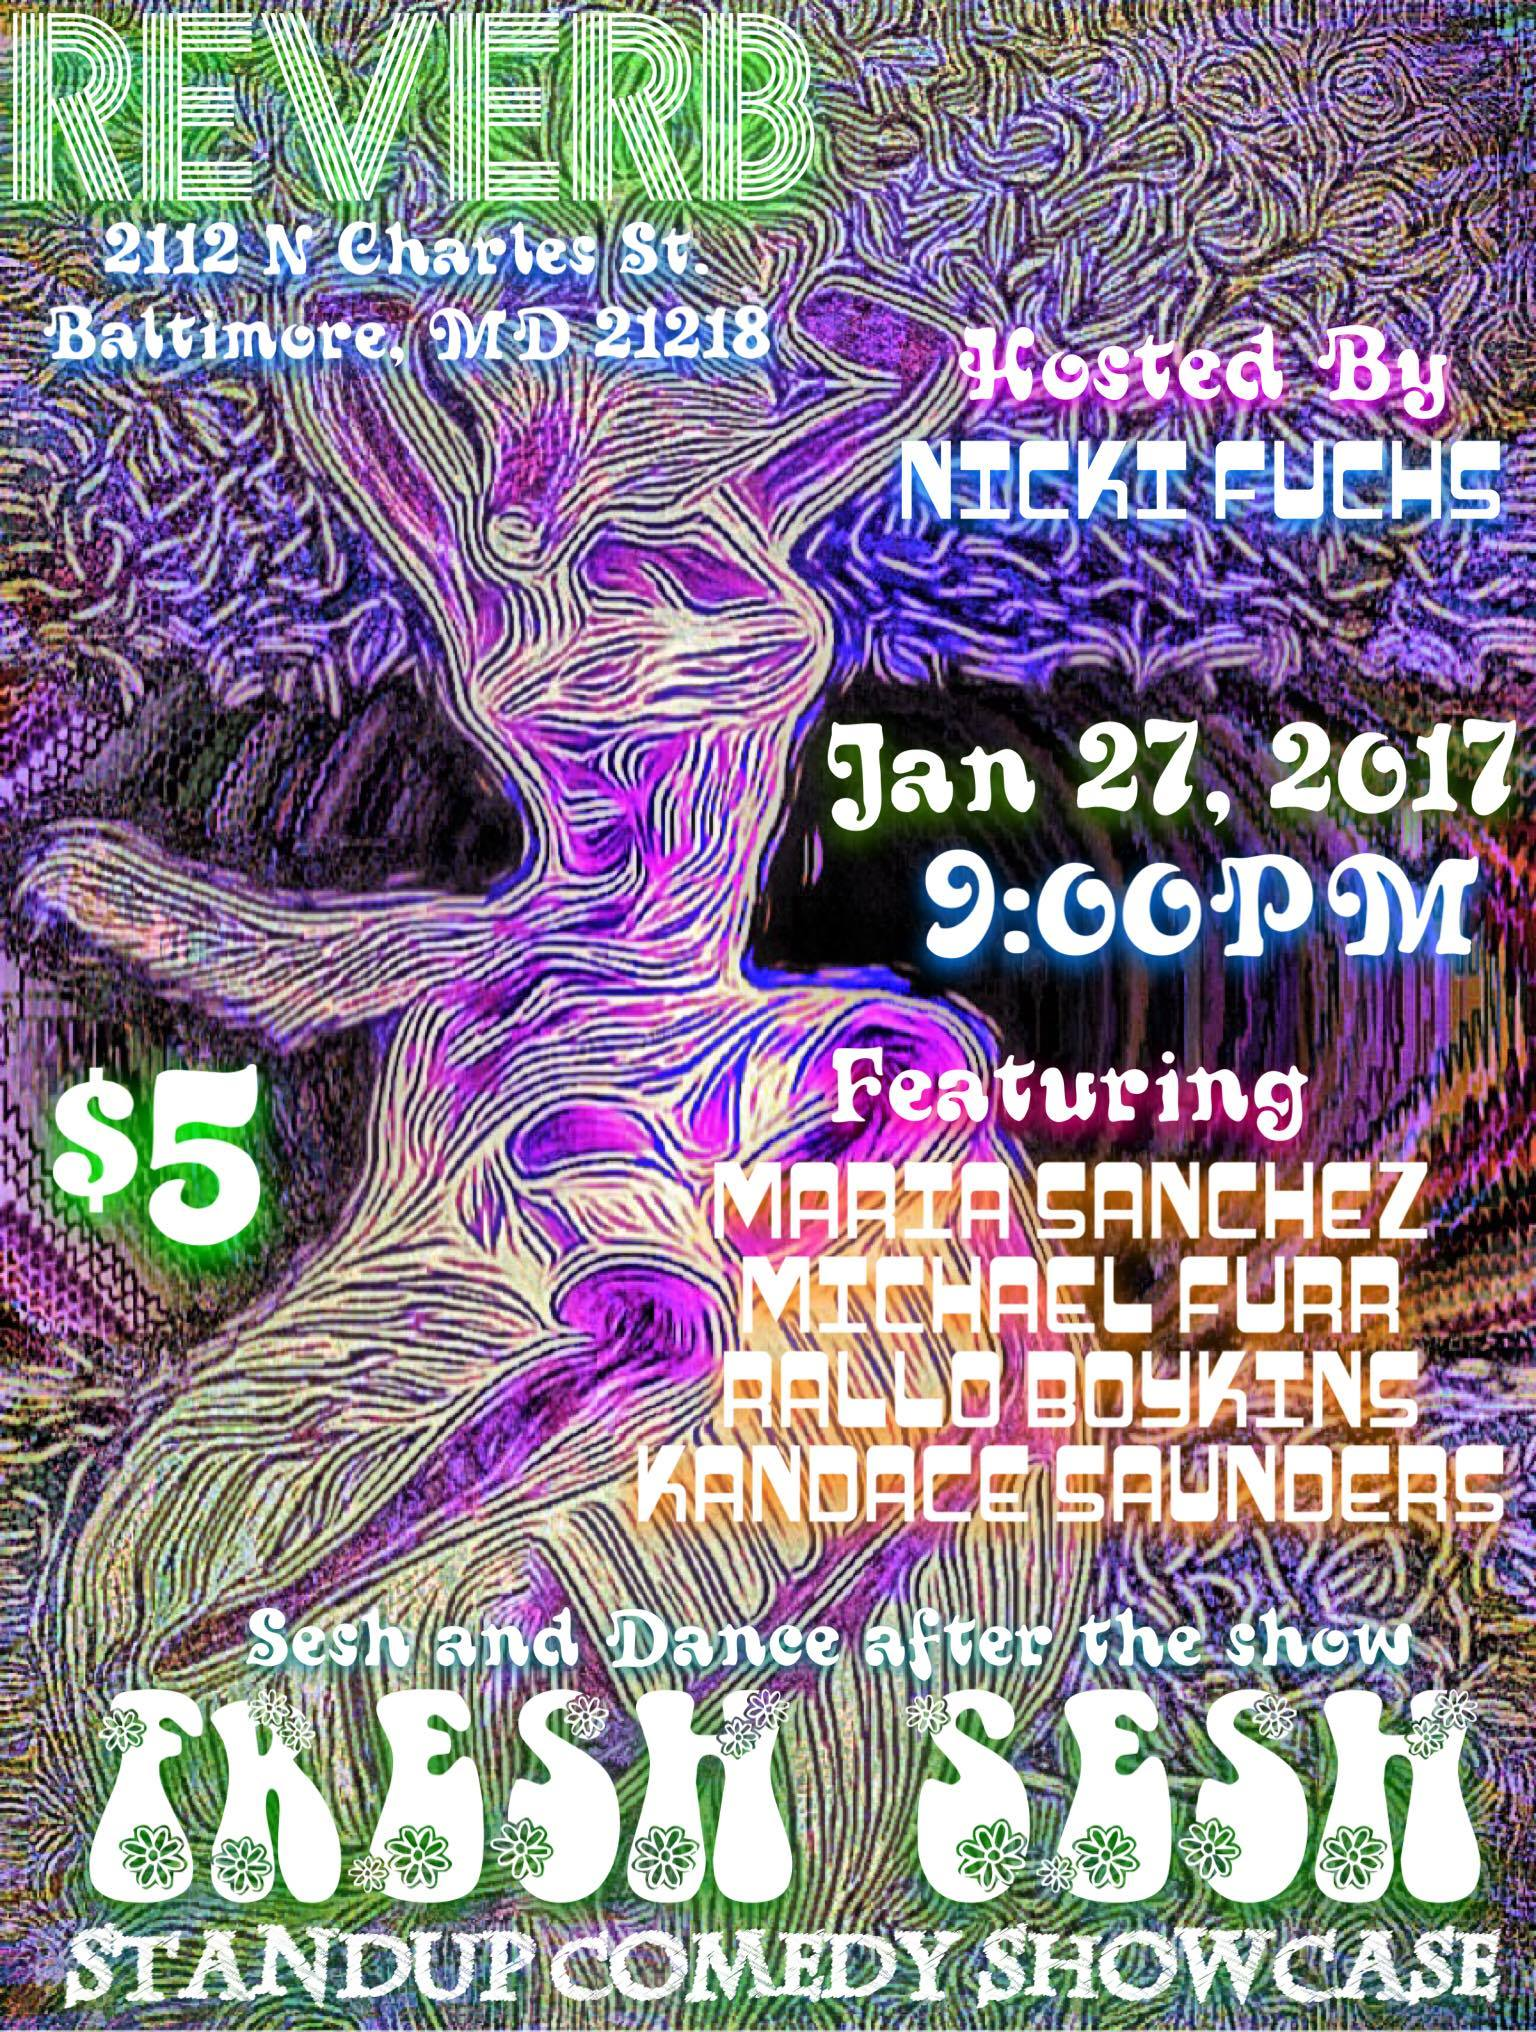 Fresh Sesh Friday, Jan 27th 9:oopm-1o:3opm  Reverb | 2112 N. Charles St. | Baltimore, MD 21218